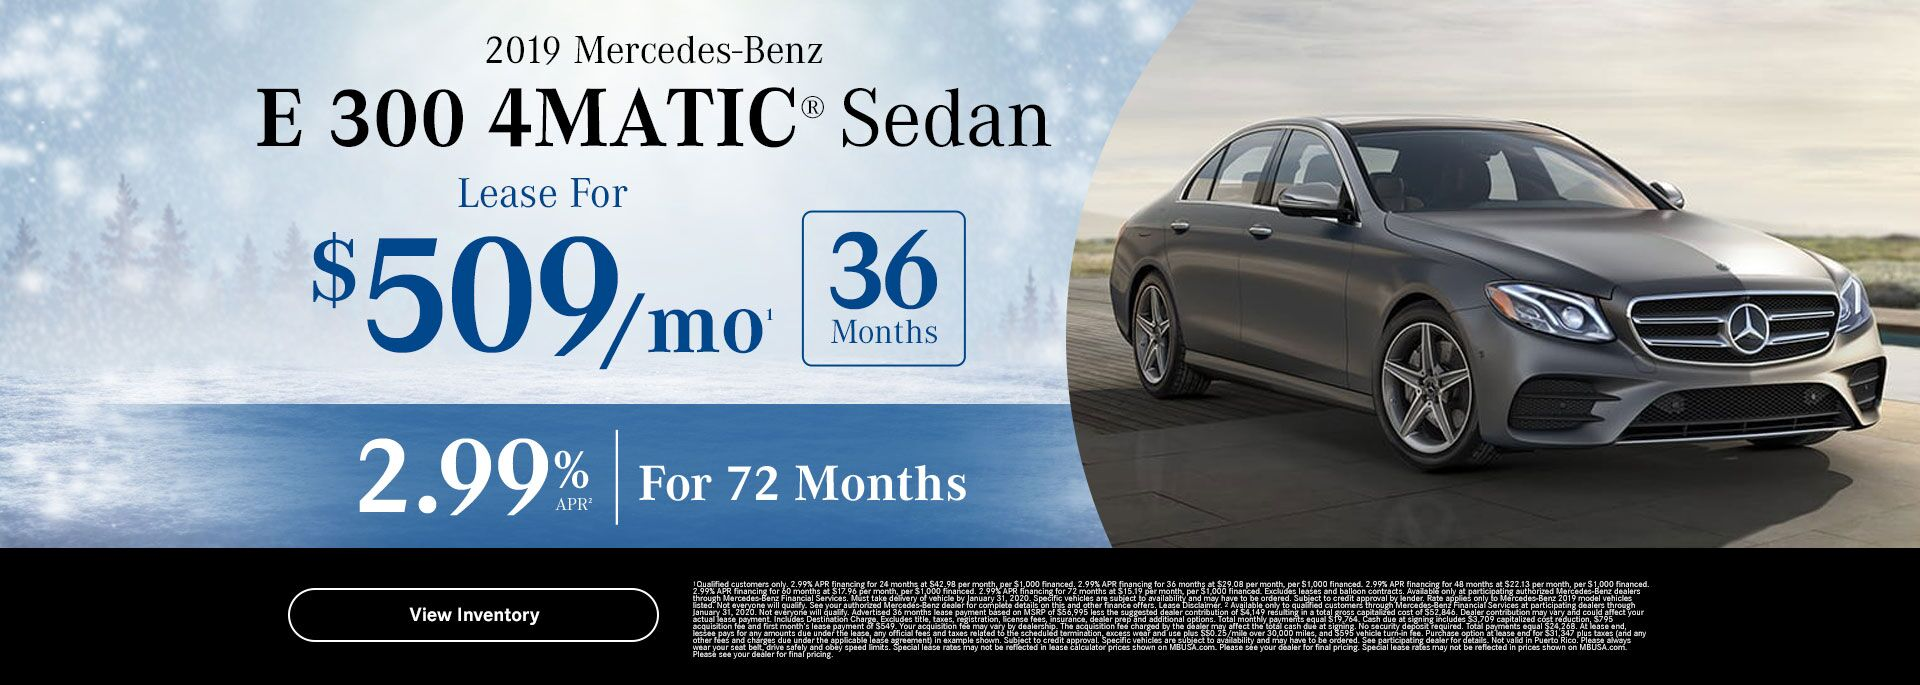 2019 E 300 4MATIC lease special